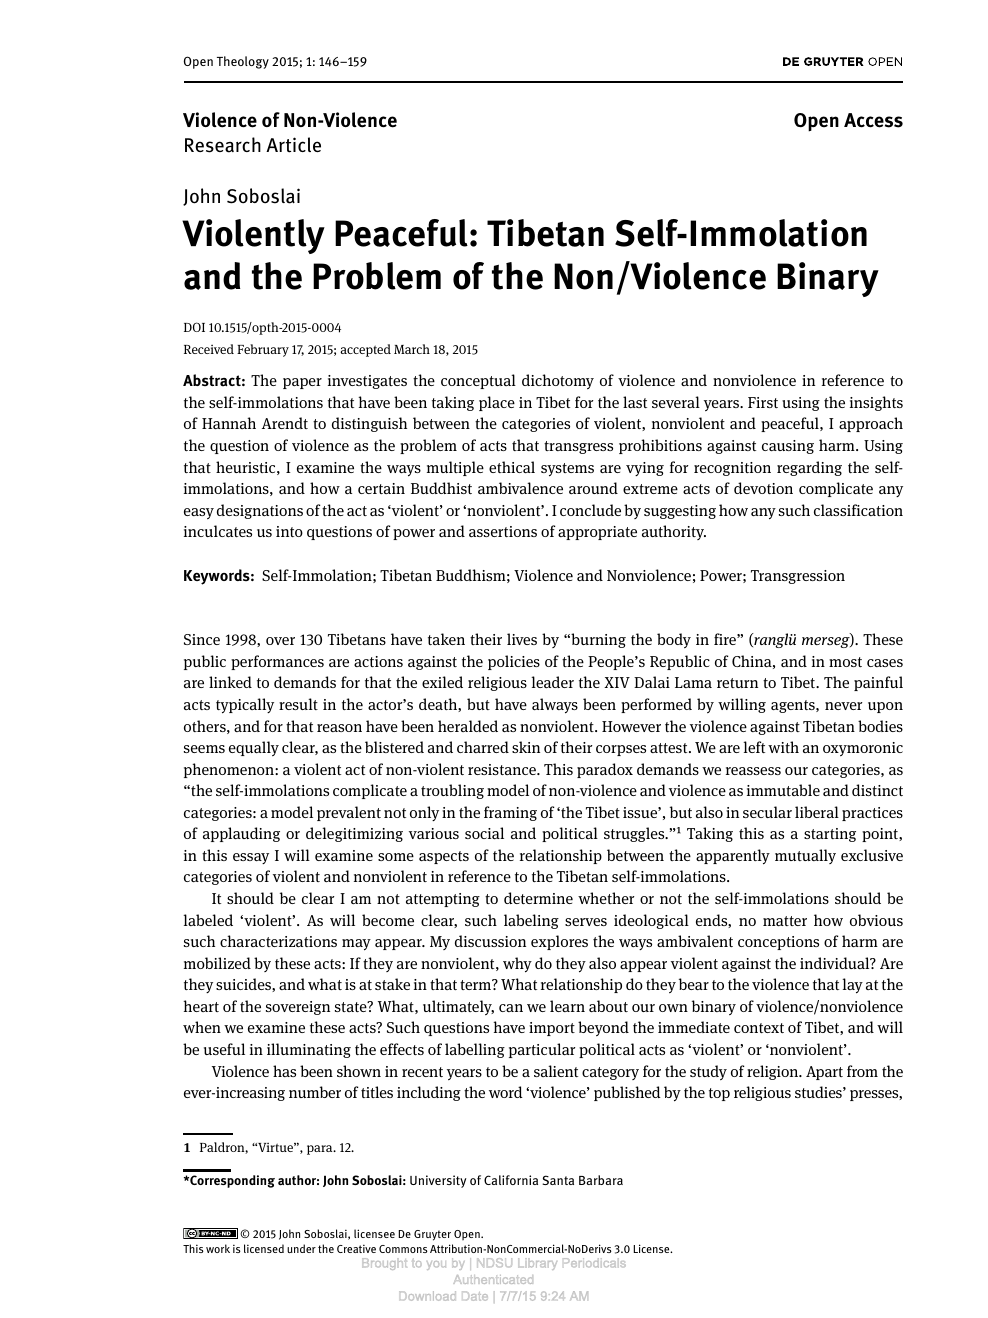 Violently Peaceful: Tibetan Self-Immolation and the Problem